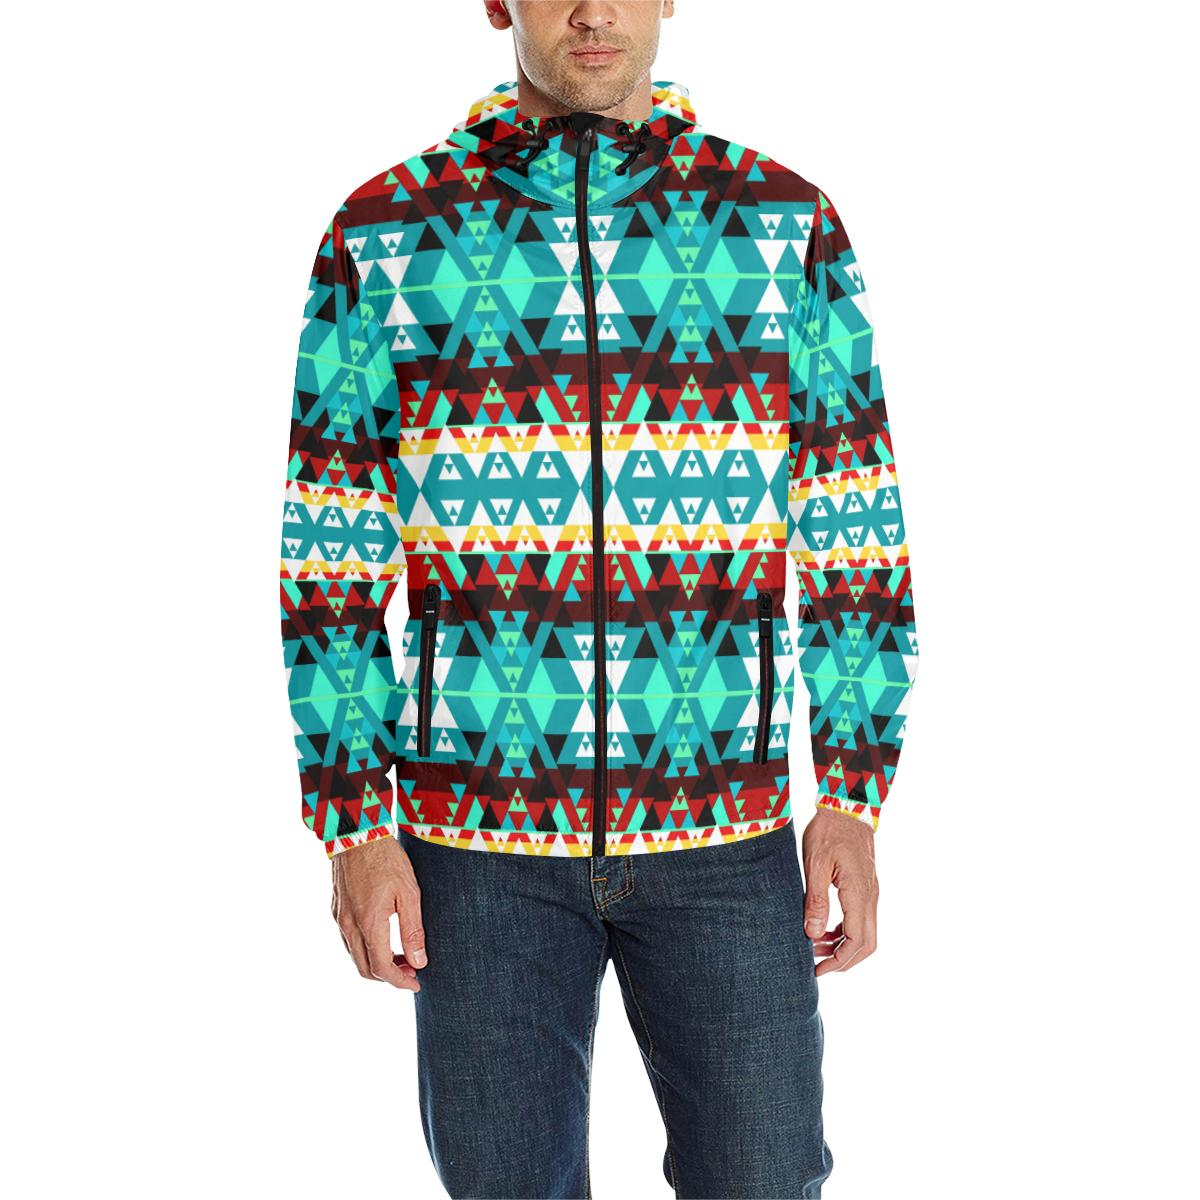 Writing on Stone Wheel Unisex Quilted Coat All Over Print Quilted Windbreaker for Men (H35) e-joyer